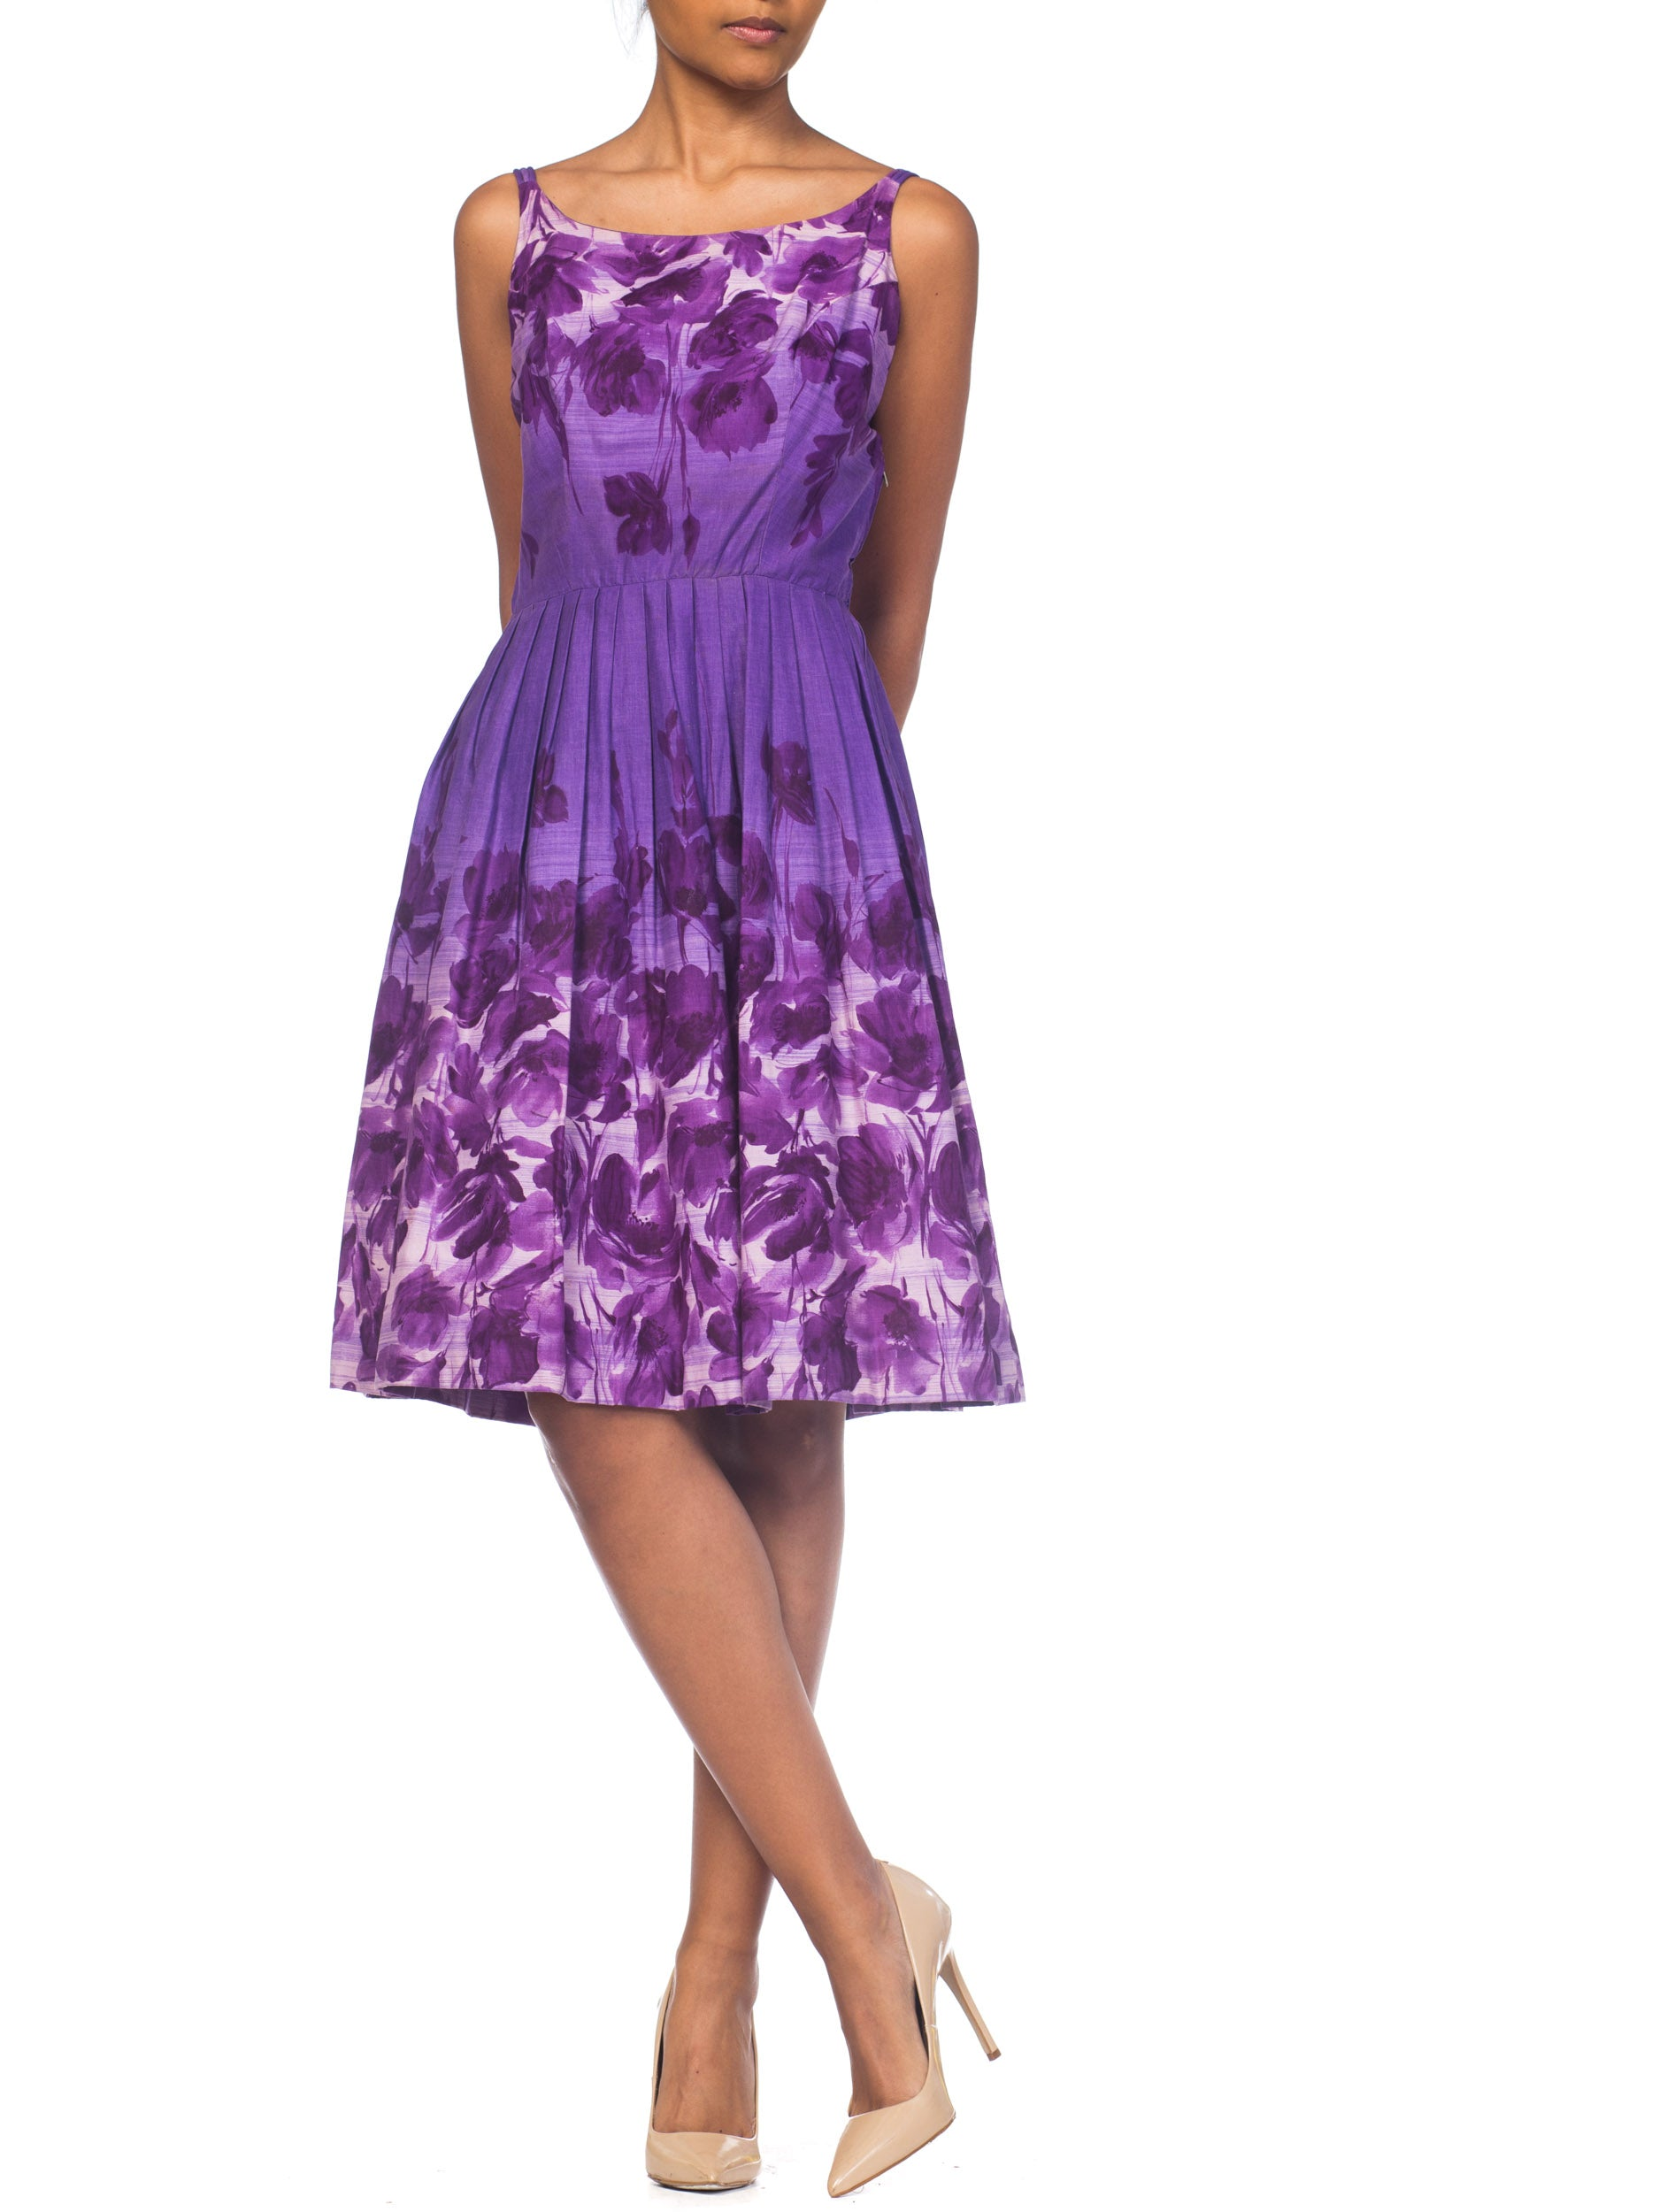 1950S Purple Cotton Floral Dress With Pockets